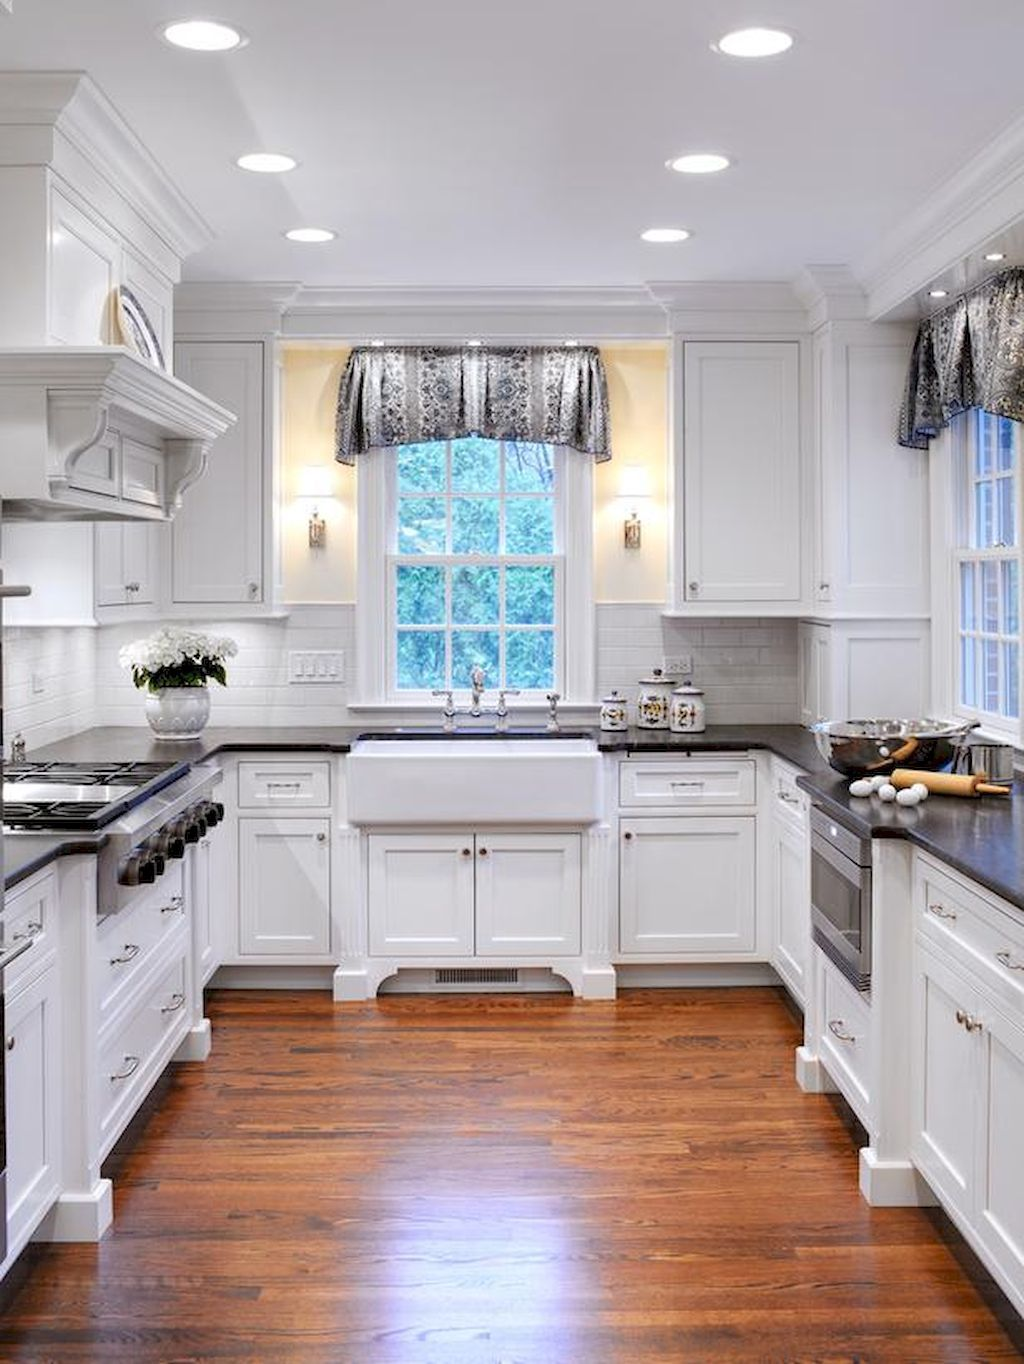 60 Gorgeous Farmhouse Kitchen Inspiration | Farmhouse kitchen ... on decorating ideas for decks, decorating ideas for floors, decorating ideas for living room, decorating ideas for mirrors, decorating ideas for doors, decorating ideas for dining room, decorating ideas for bedrooms, decorating above kitchen window ideas, decorating ideas for vaulted ceilings, country decorating with old windows, decorating ideas for fireplaces,